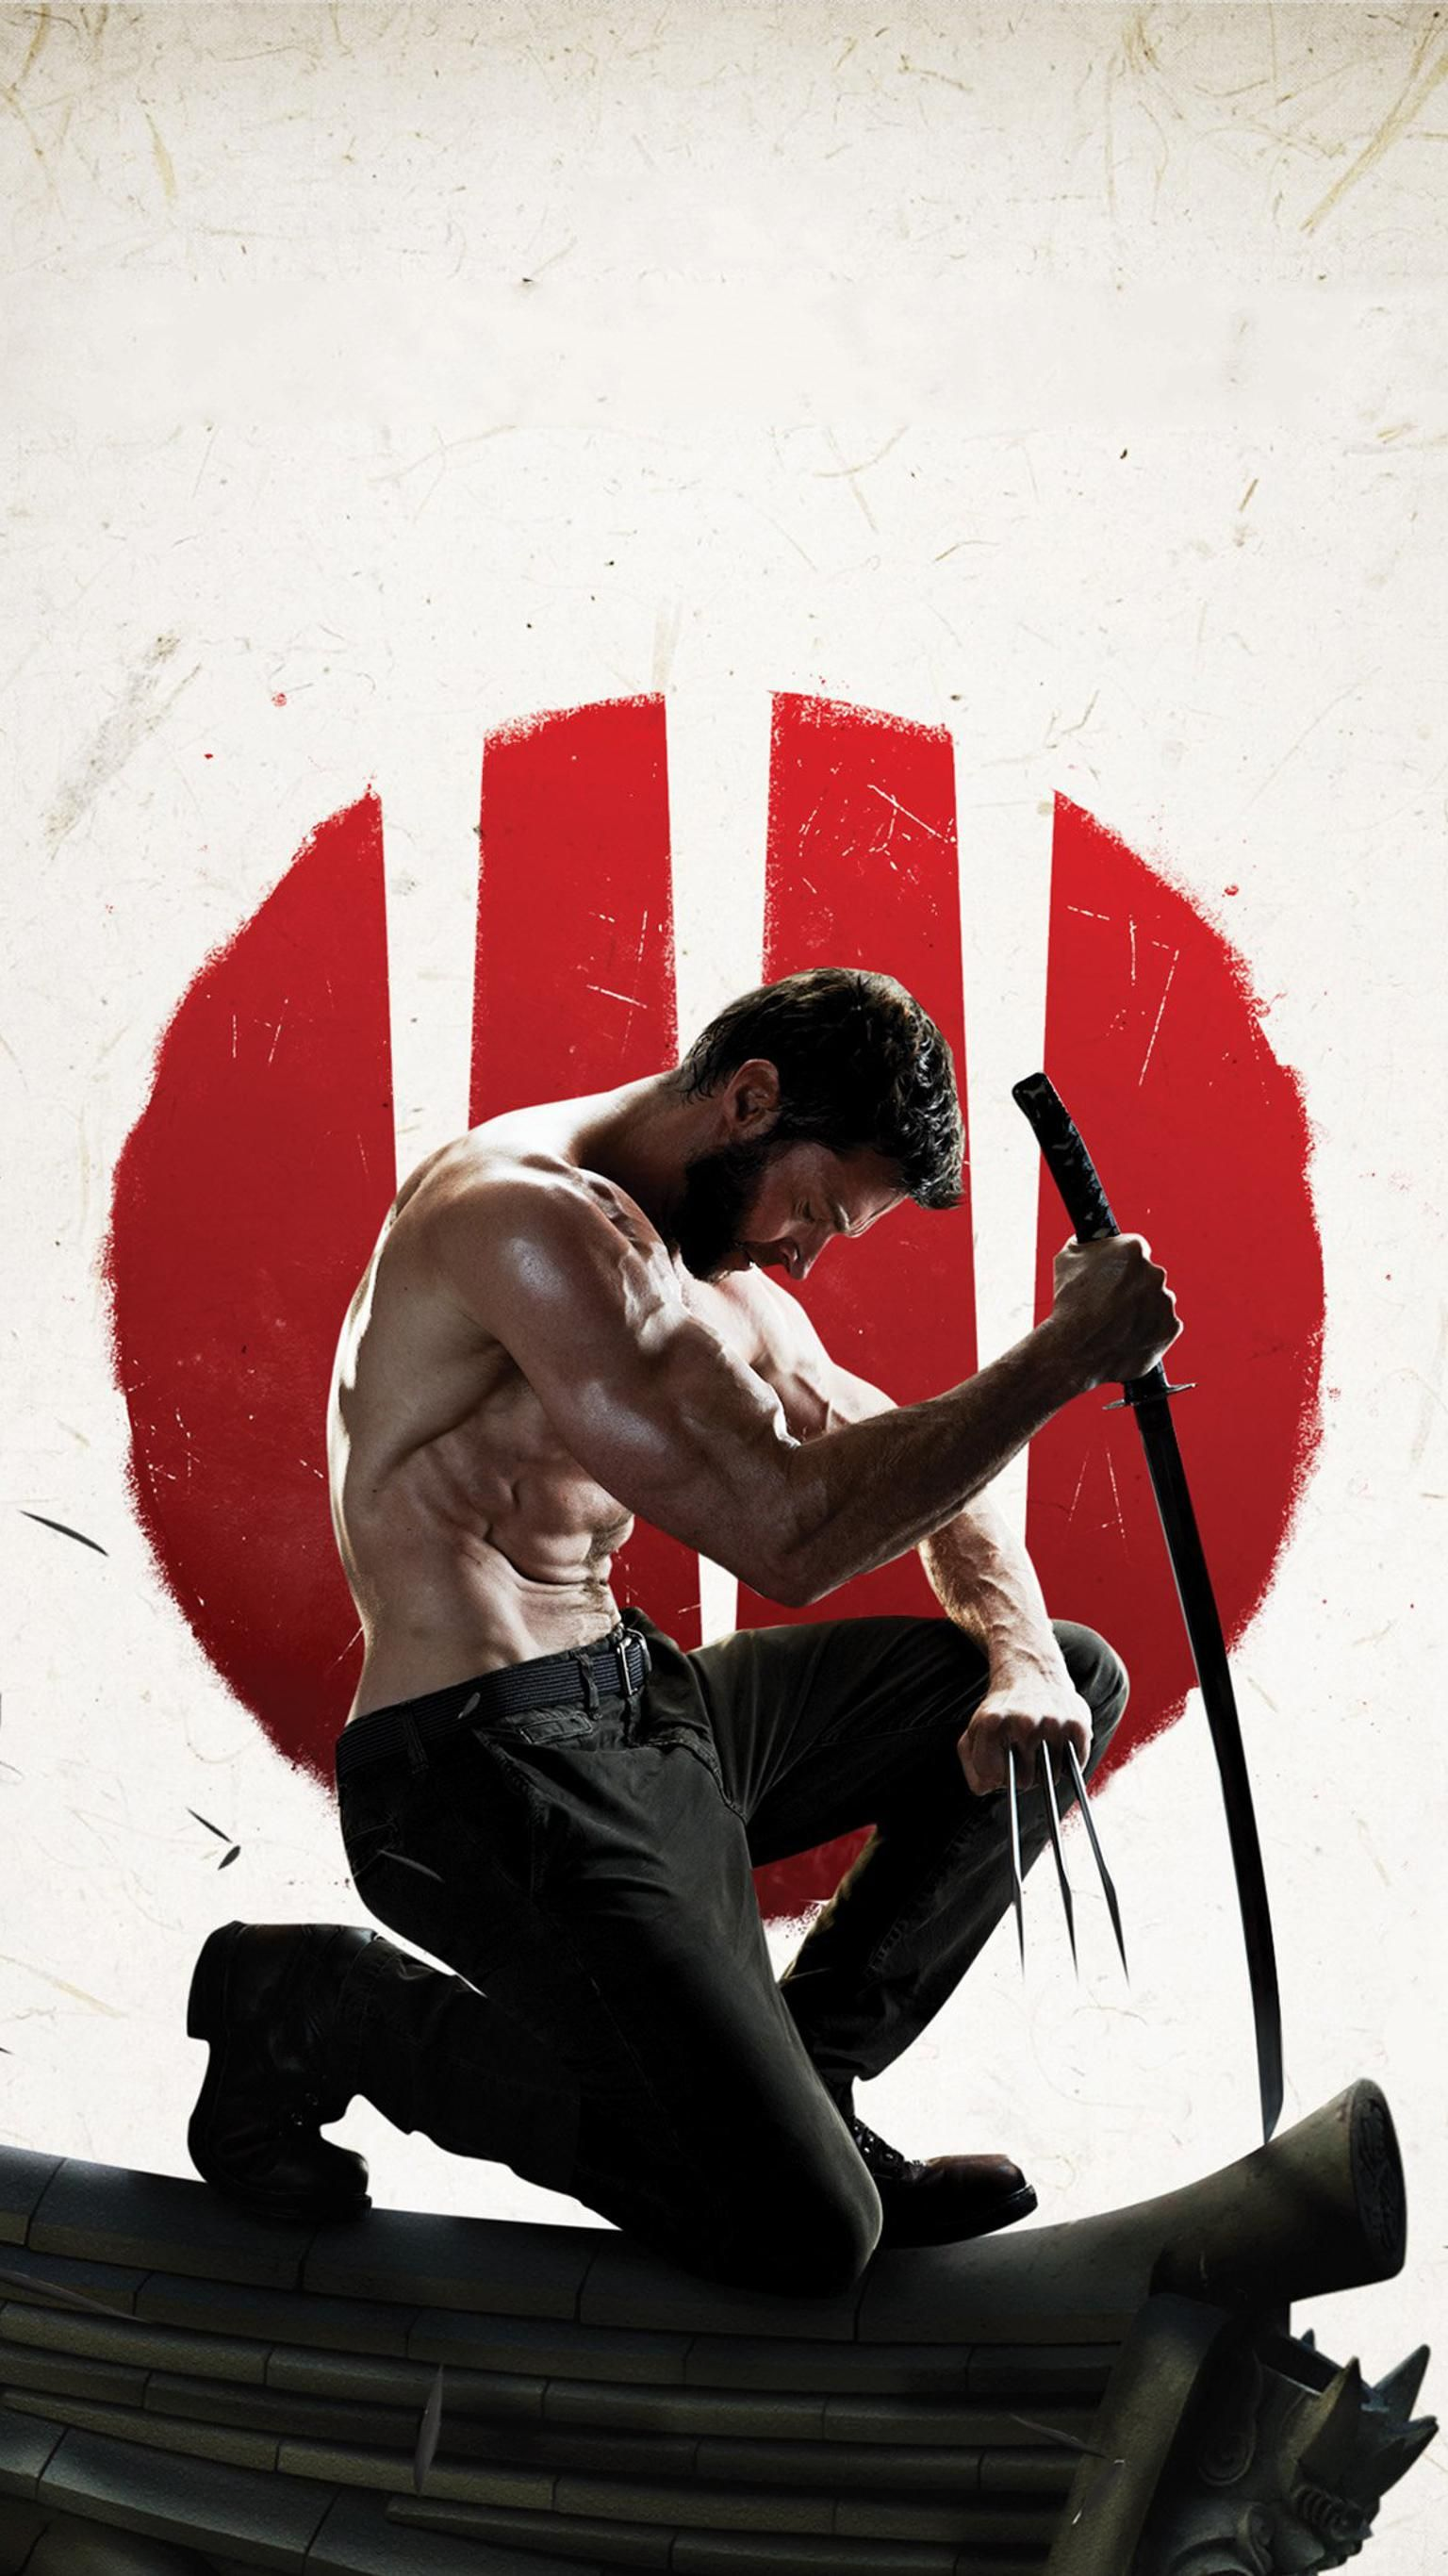 The Wolverine 2013 Phone Wallpaper Moviemania In 2020 Wolverine Marvel Wolverine Poster Wolverine Art